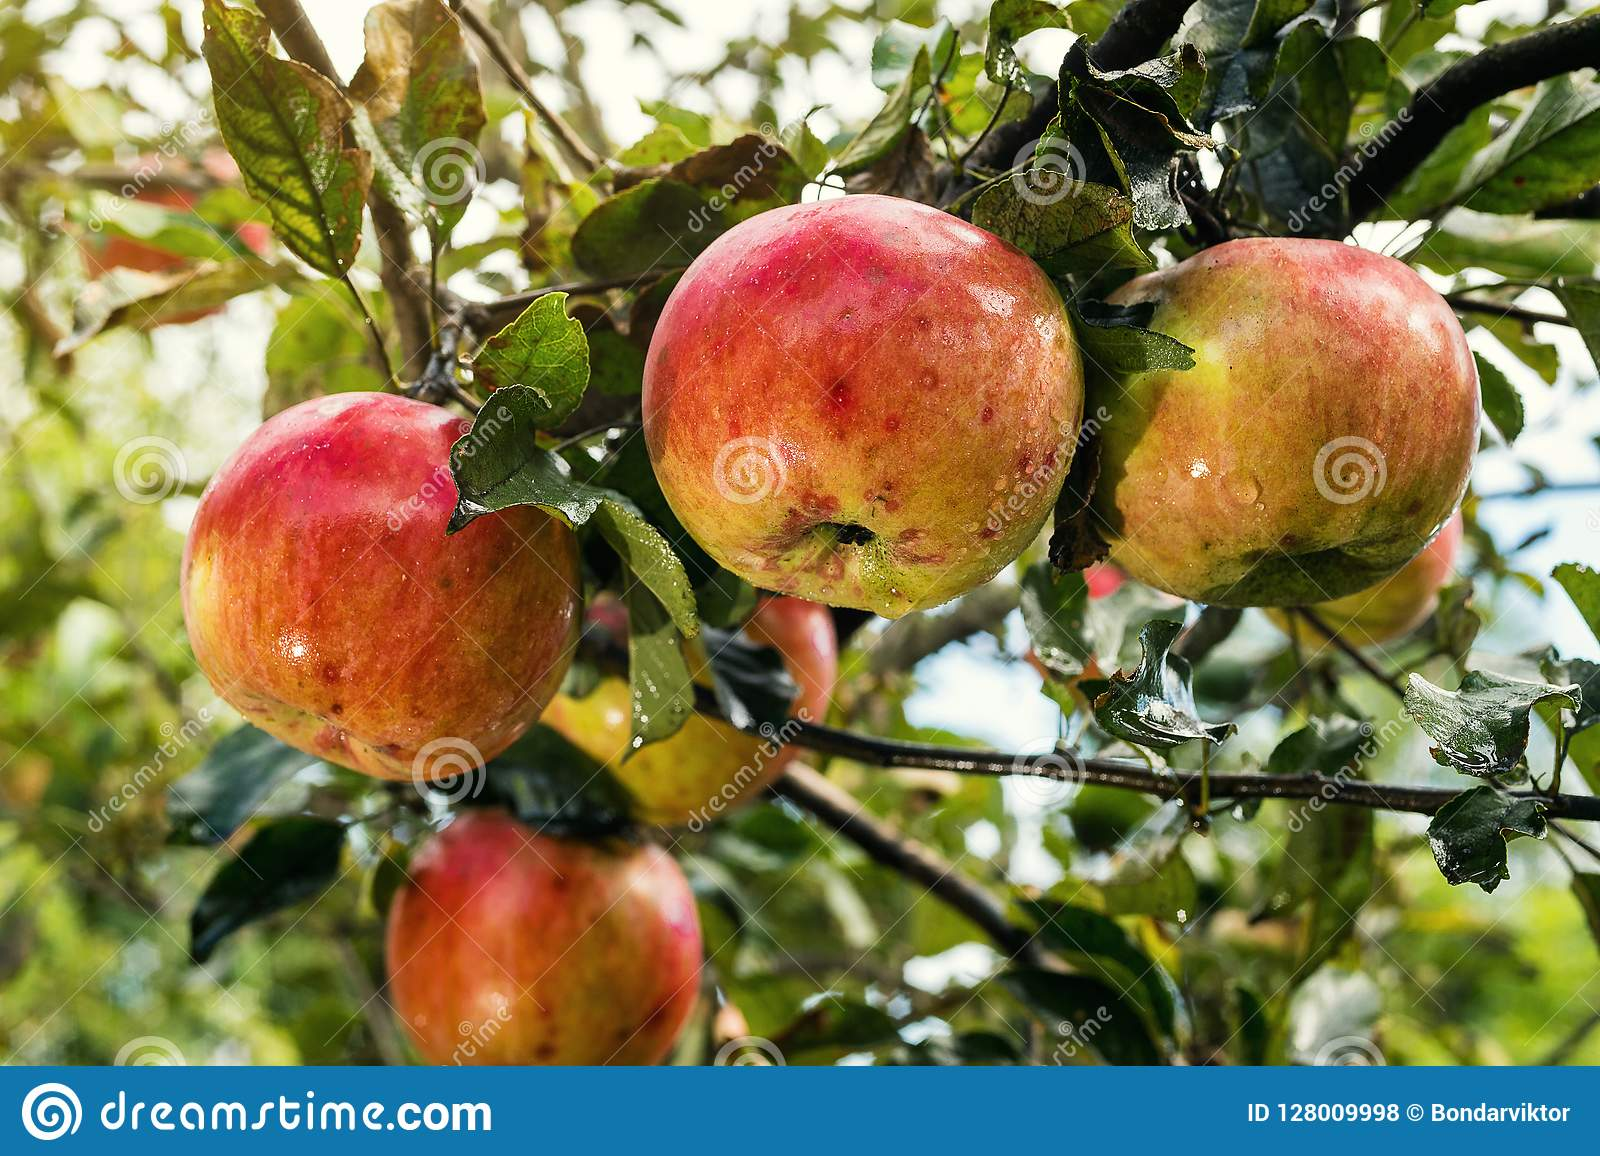 Fresh organic orchard full of riped red apples before harvest